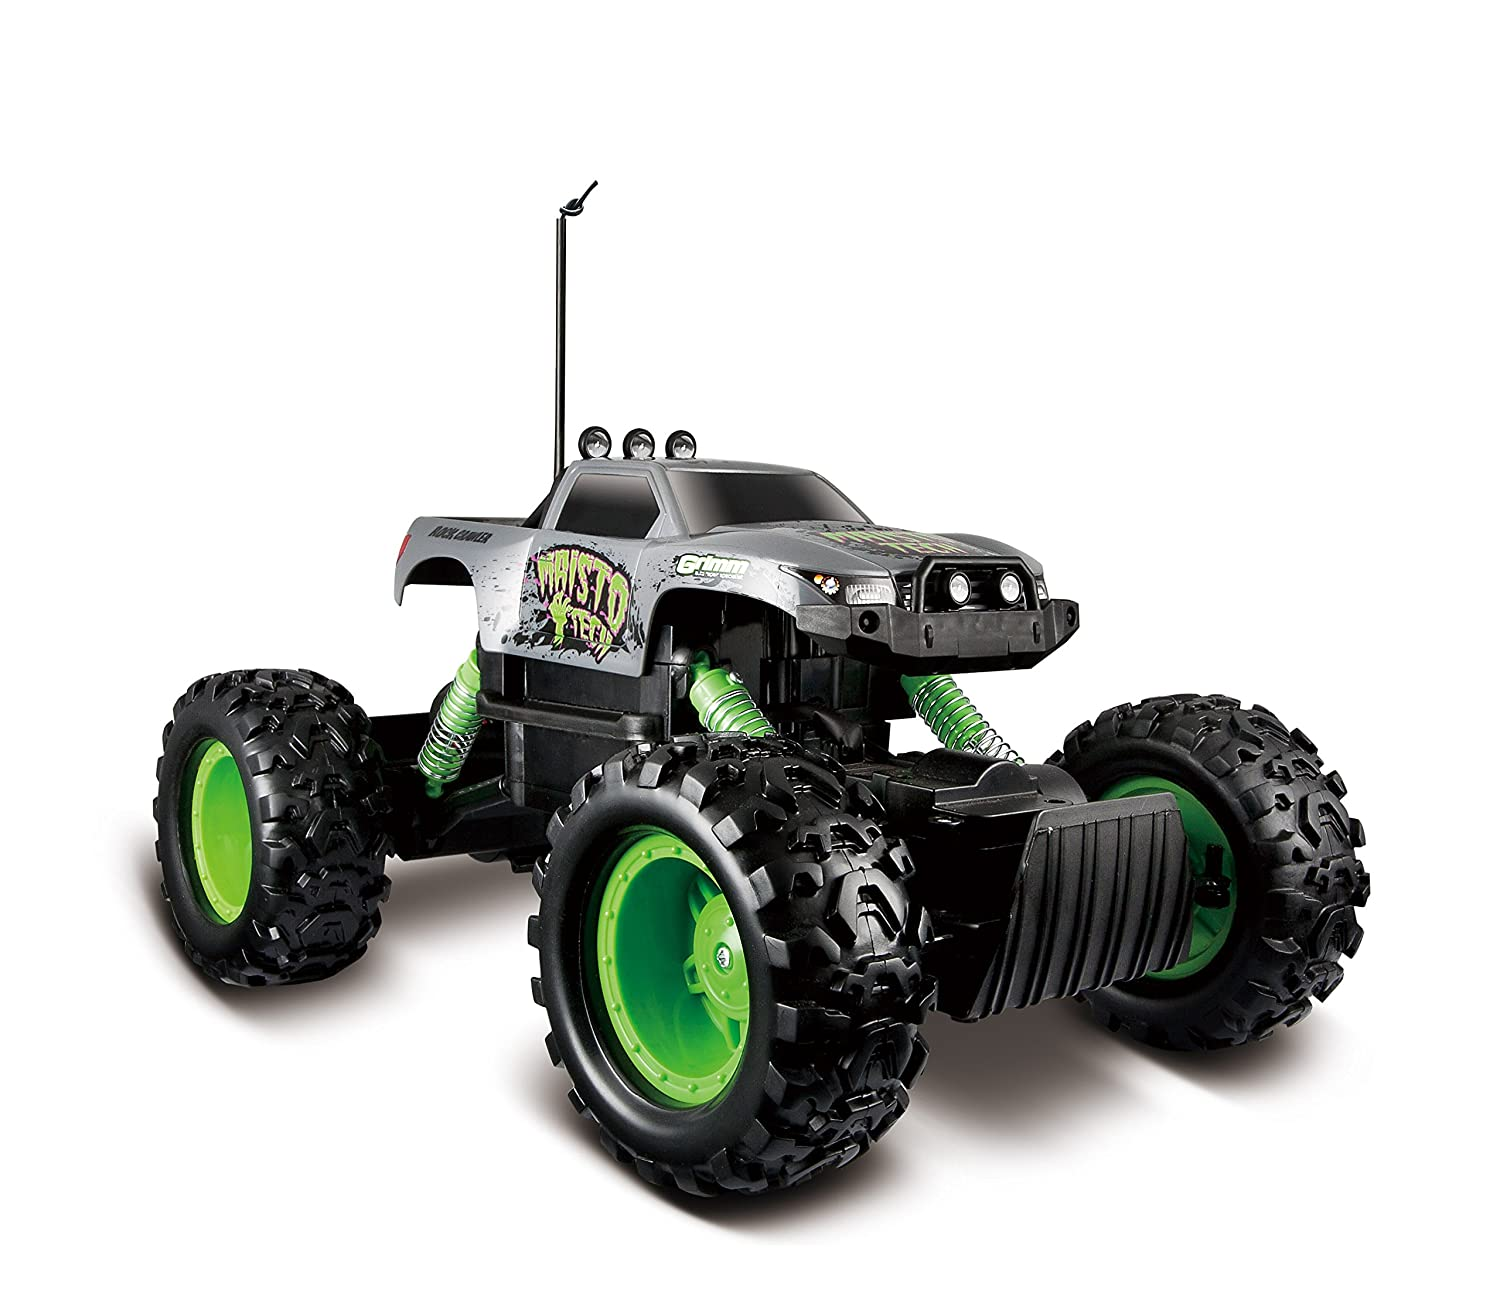 Toys That Are Cool : Best toys for kids the rc cars with